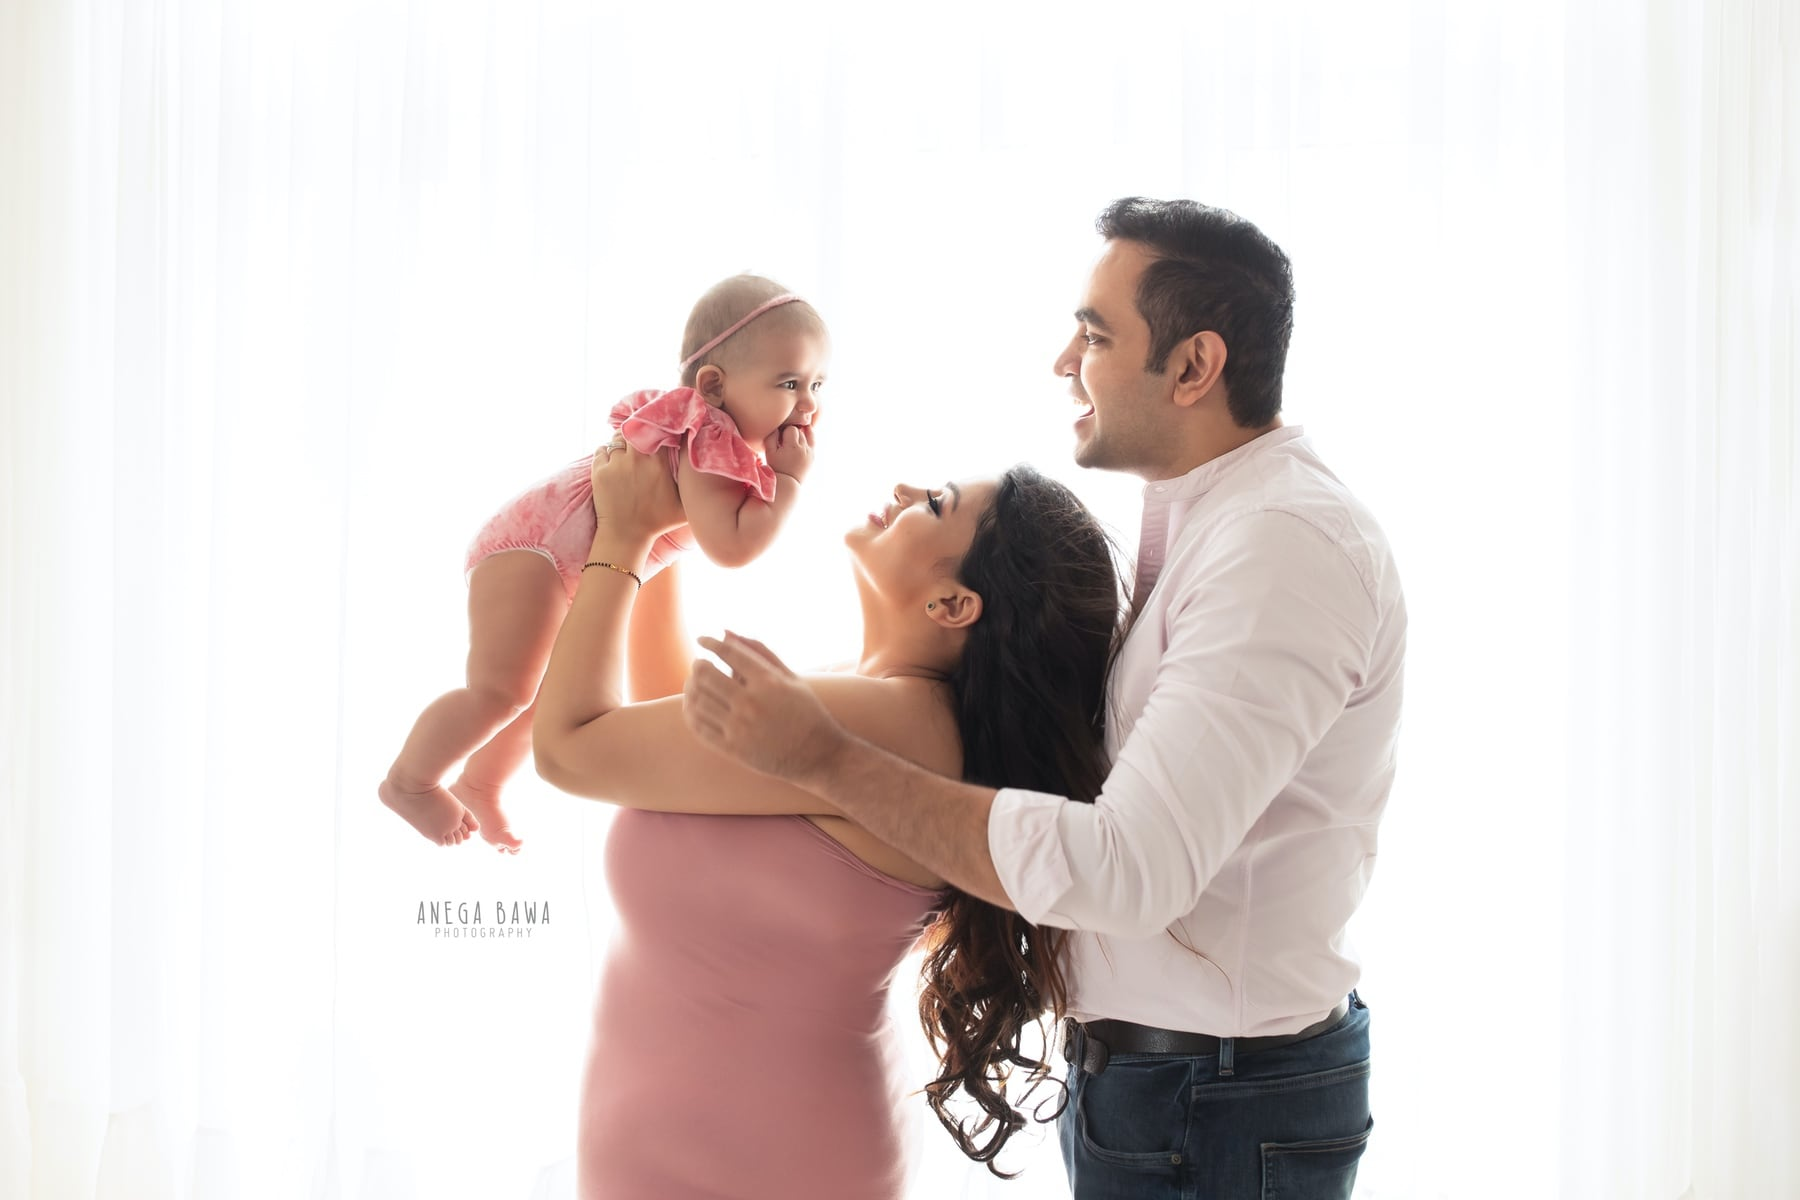 242110-white-background-pink-family-photography-delhi-5-6-7-months-baby-photoshoot-gurgaon-anega-bawa